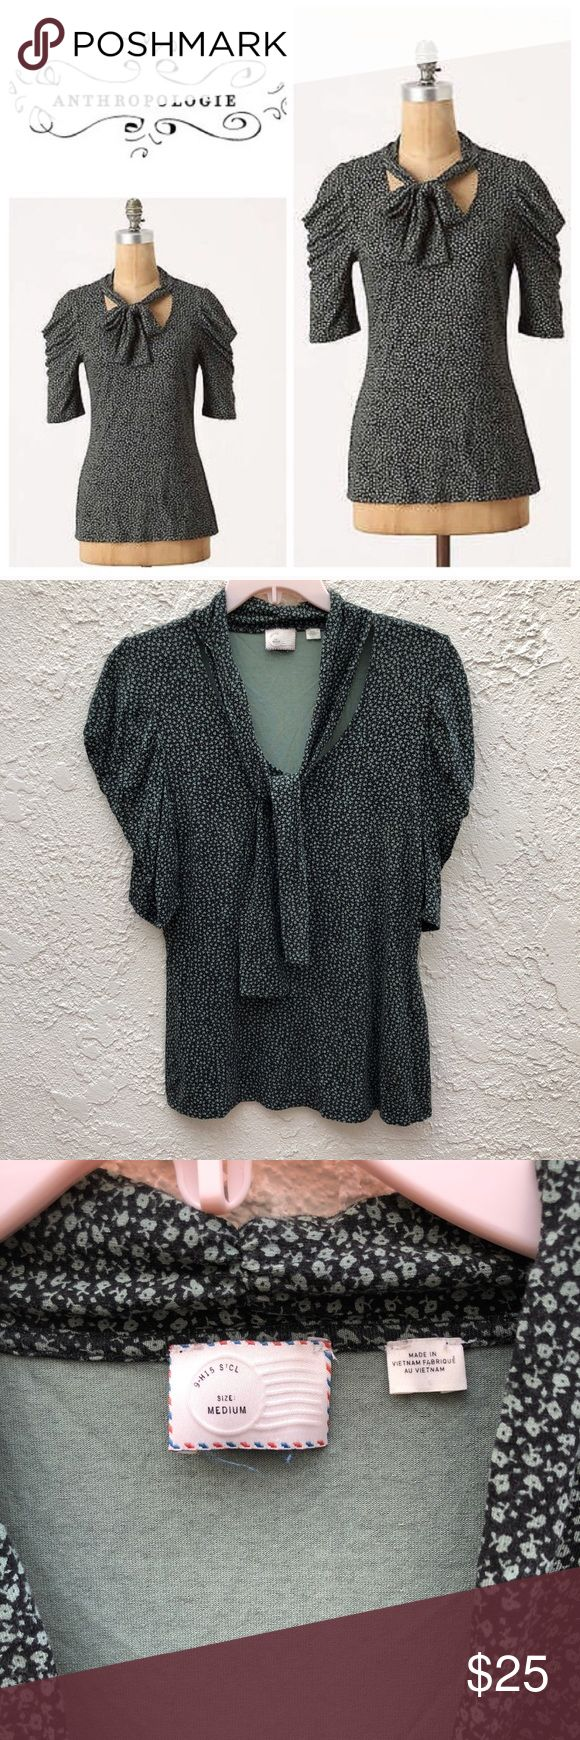 Anthropologie Postmark Pompon Tie Ruched Sleeve T Anthropologie Postmark Pompon Dotted Tie Ruched Sleeve Tee Shirt. Tie neck. EUC Perfect condition. Beautiful green color. Anthropologie Tops Tees - Short Sleeve